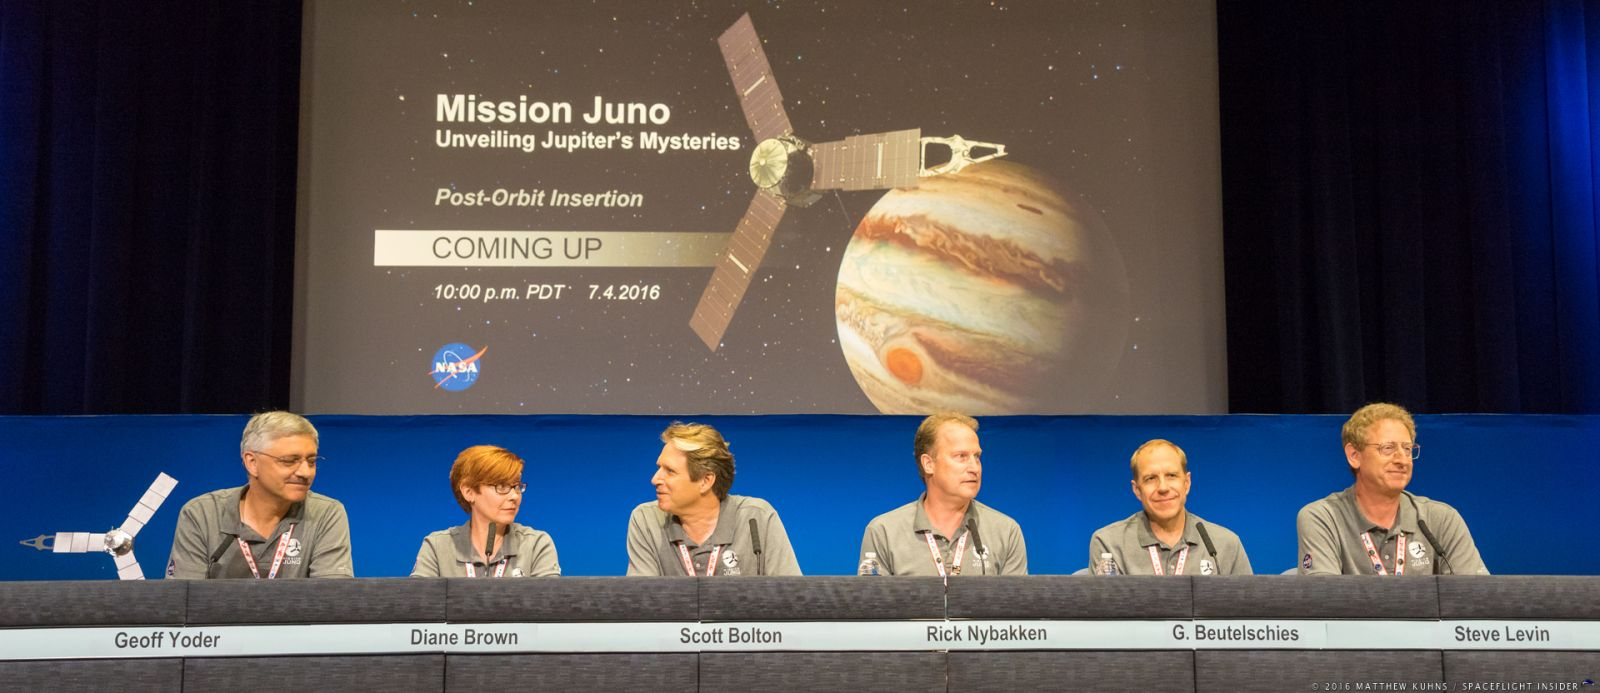 Managers for NASA's Juno mission hold a press conference to announce the spacecraft's successful insertion into orbit above Jupiter. Photo Credit: Matthew Kuhns / SpaceFlight Insider